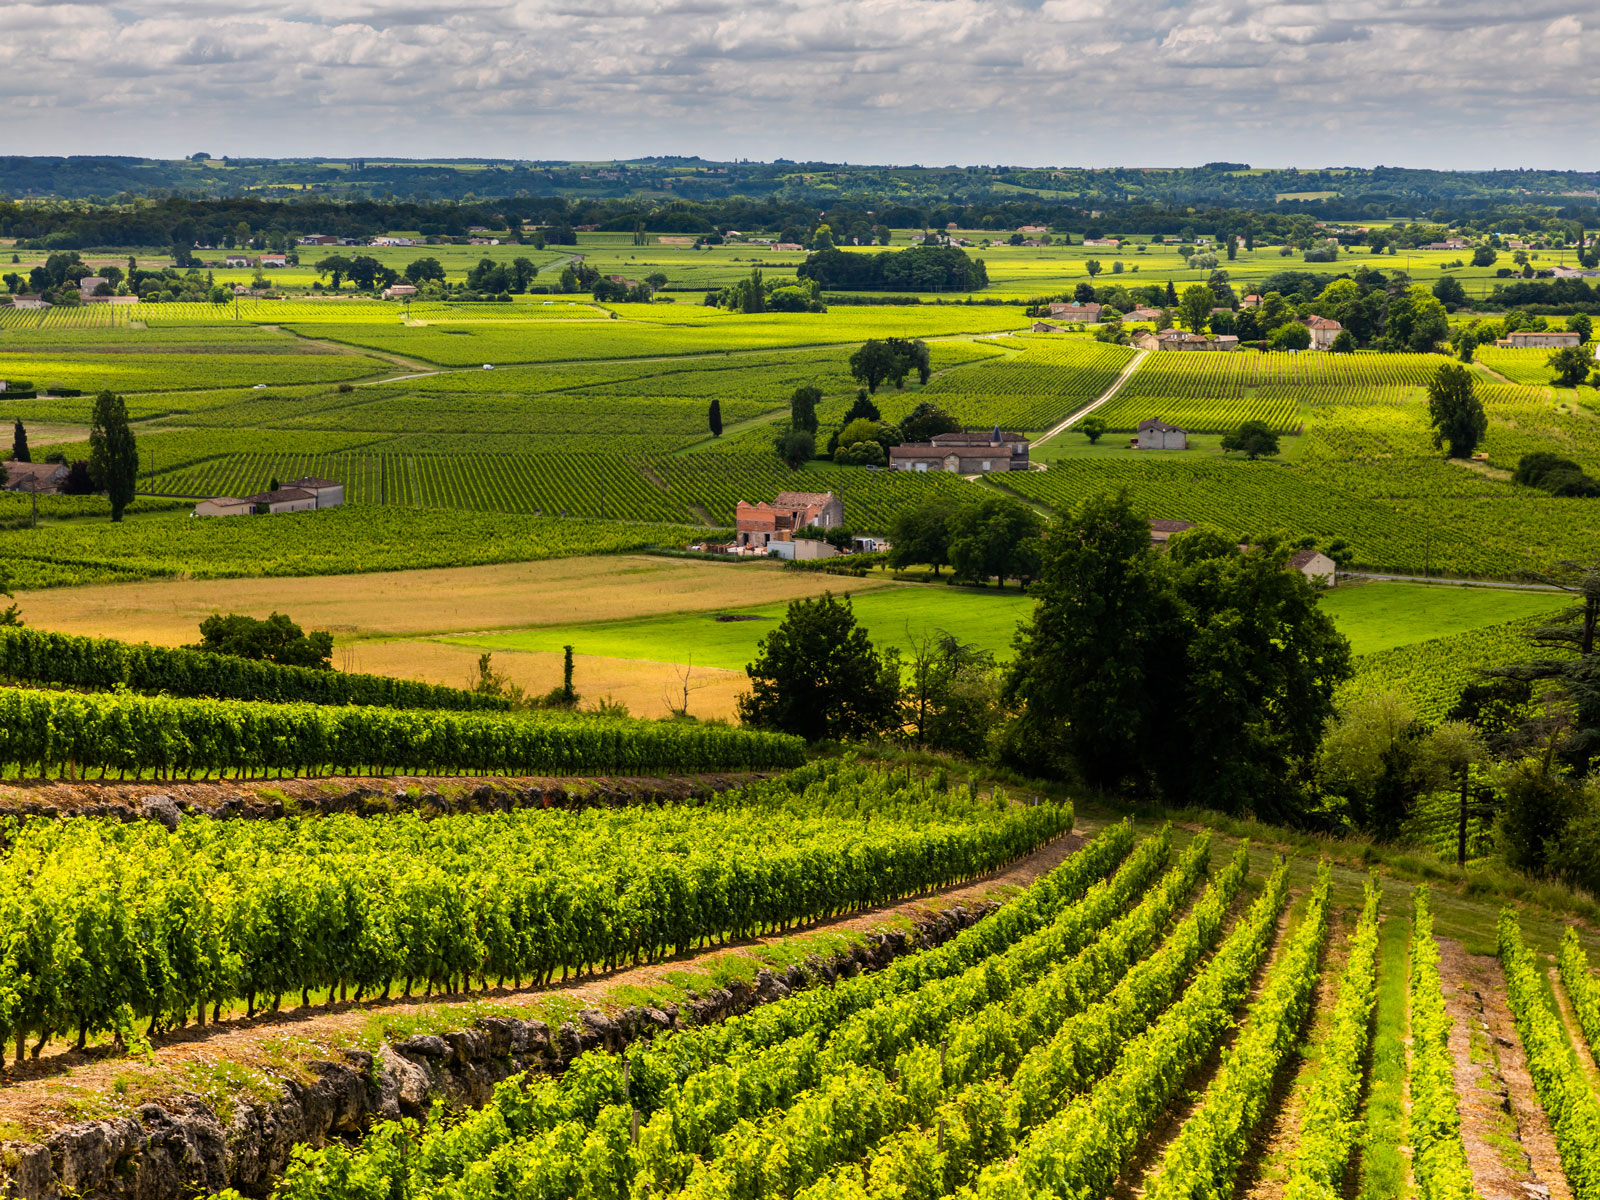 Bordeaux Region Makes Push Toward More Environmentally-Friendly Viticulture